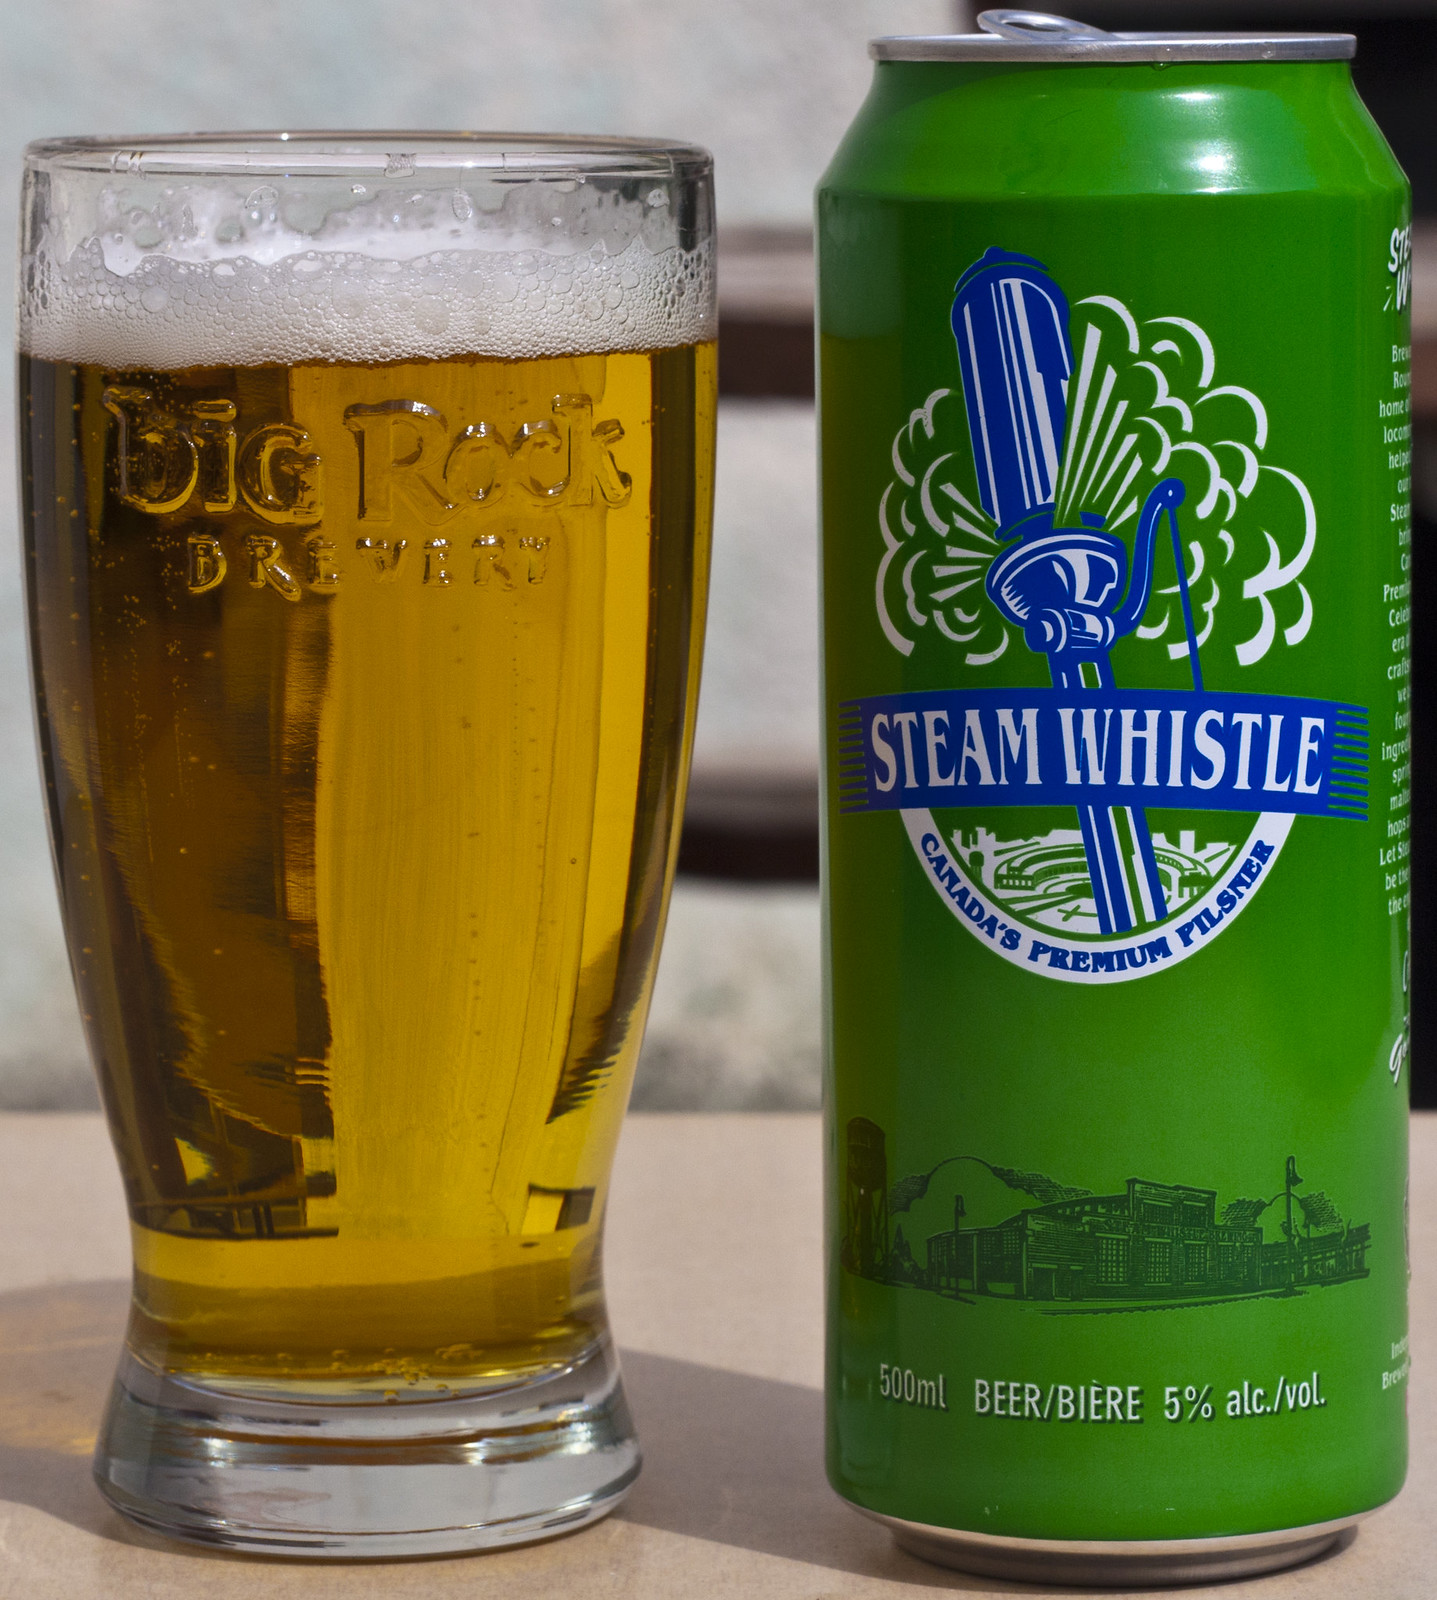 Review: Steam Whistle Pilsner by Cody La Bière